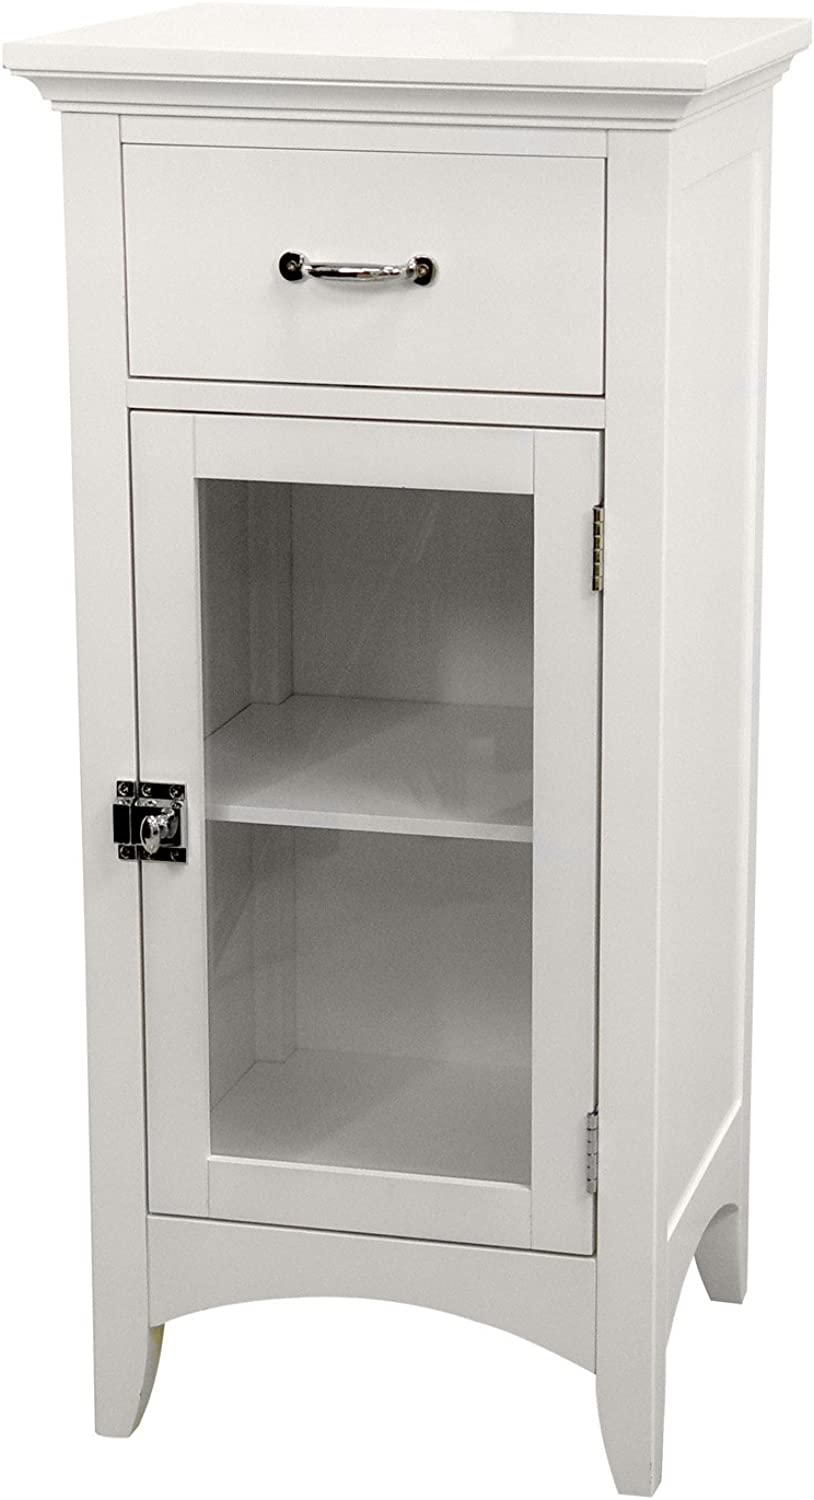 Elegant Home Fashions Madison Avenue Collection Shelved Floor Cabinet with Drawer, White